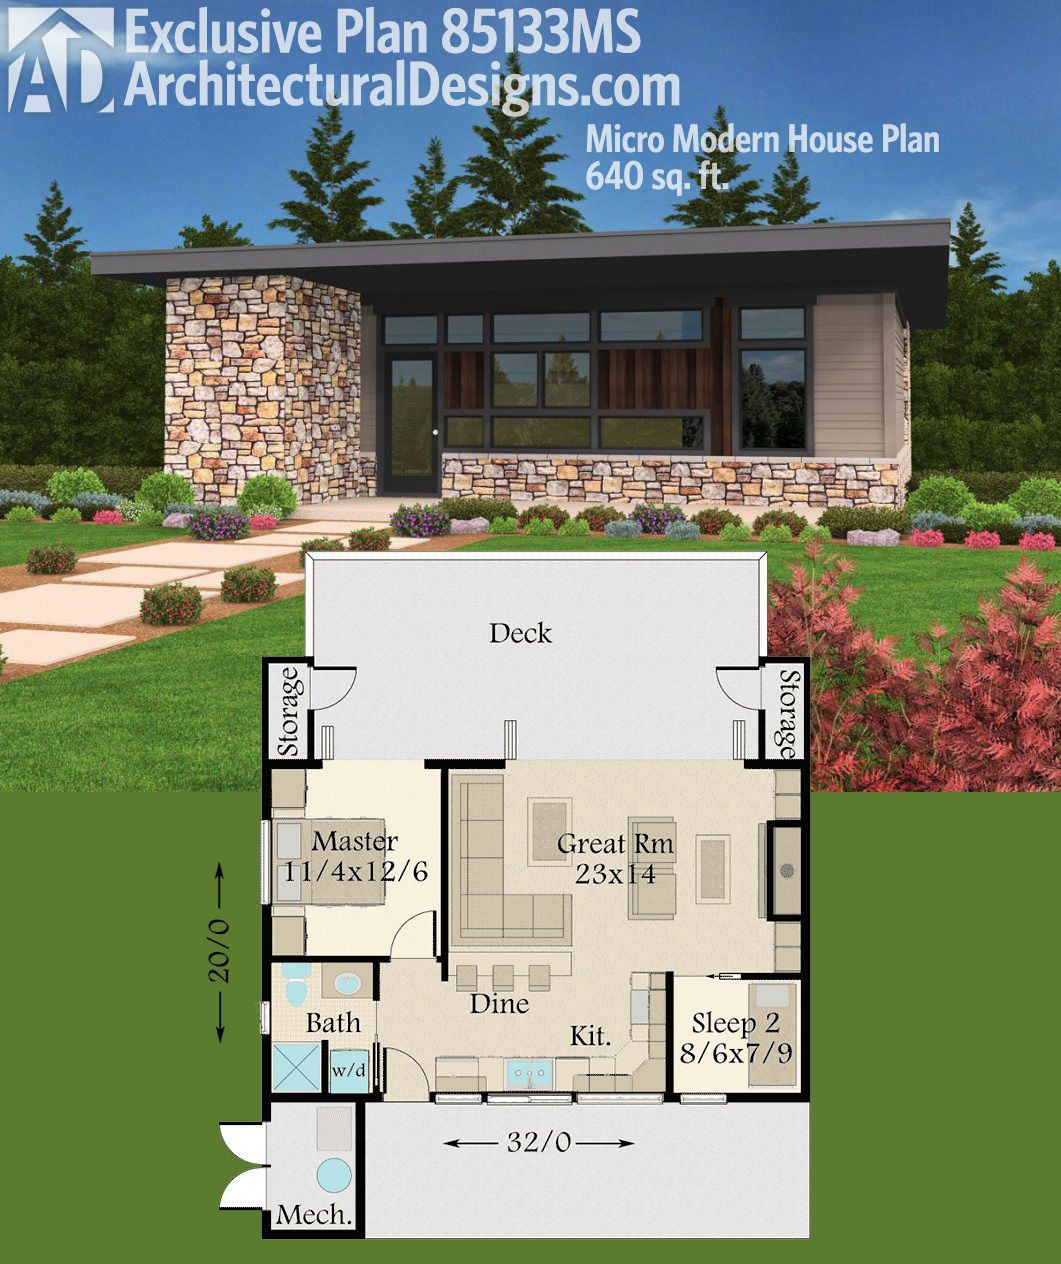 Plan 85133MS: Exclusive Tiny Modern House Plan With Outdoor Spaces Front And Back In 2019